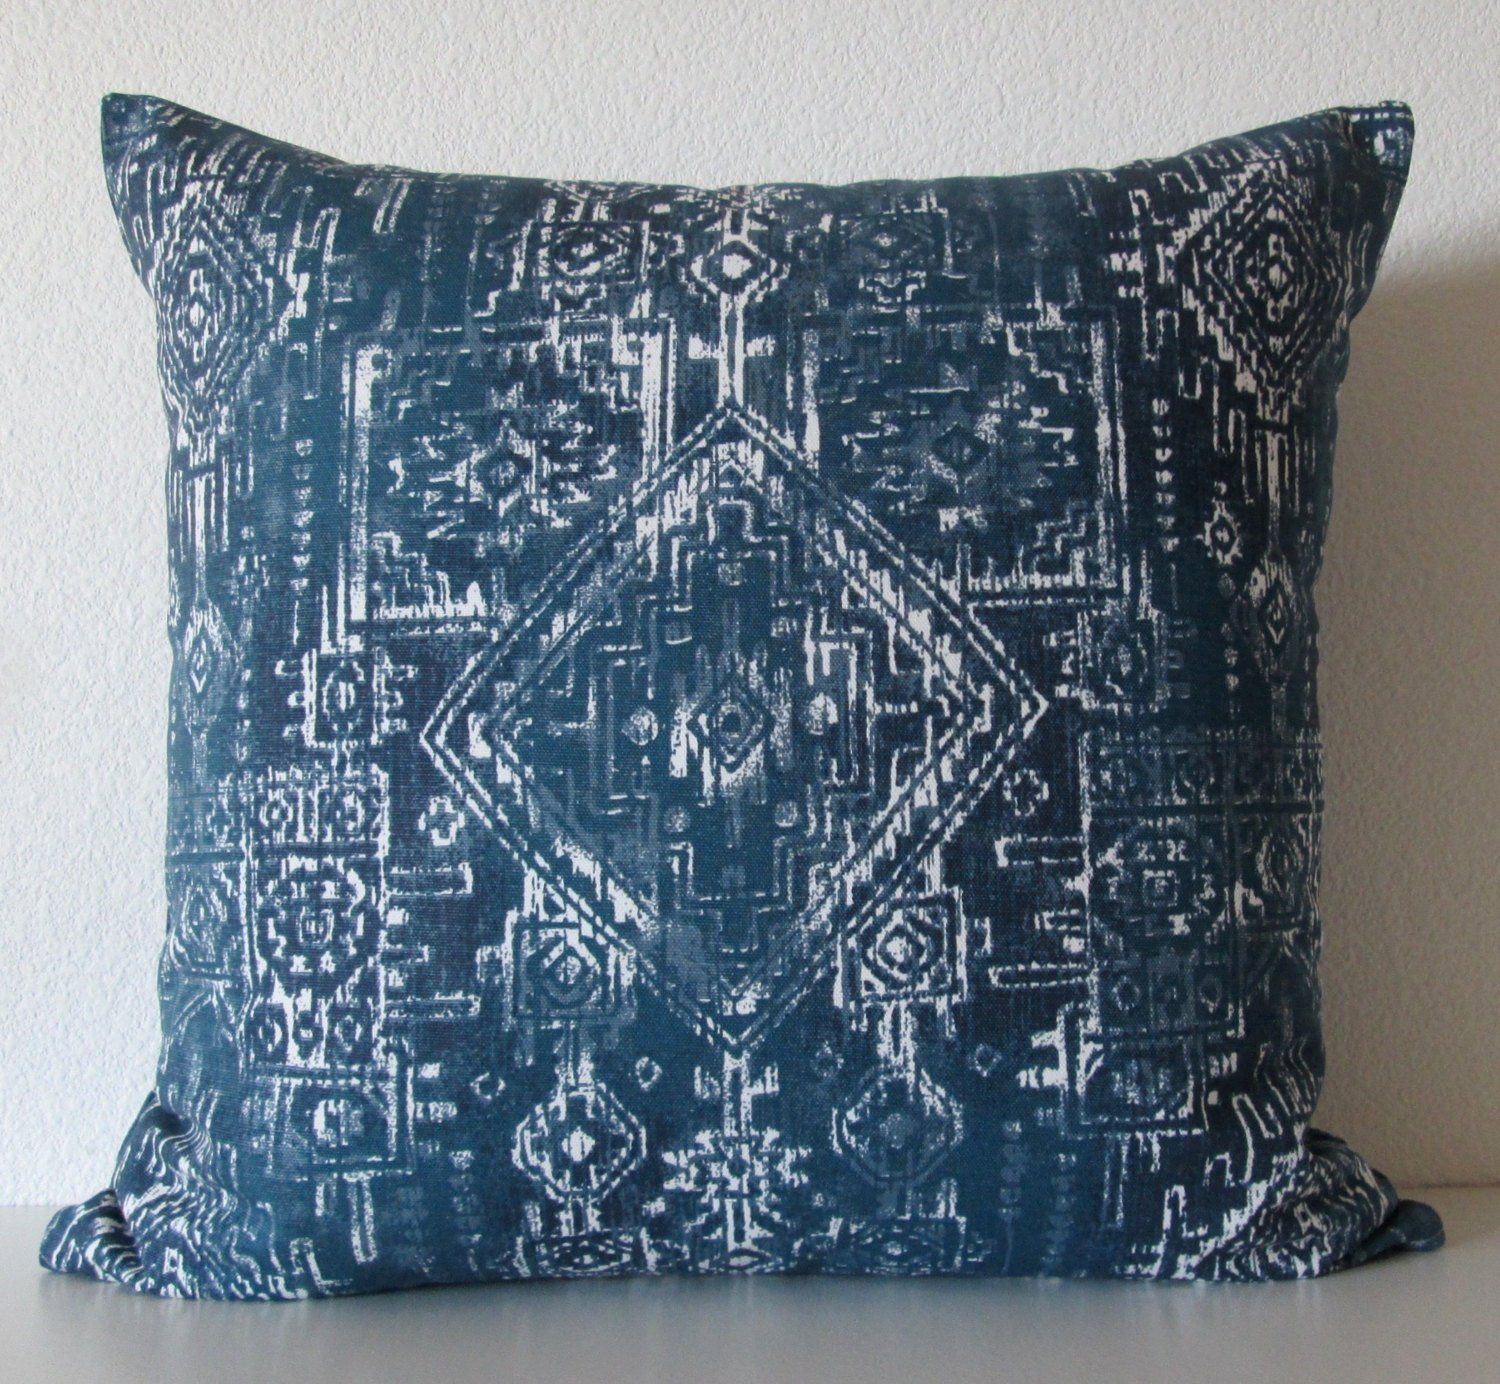 Boho chic navy tribal decorative pillow cover. List price is for a ...